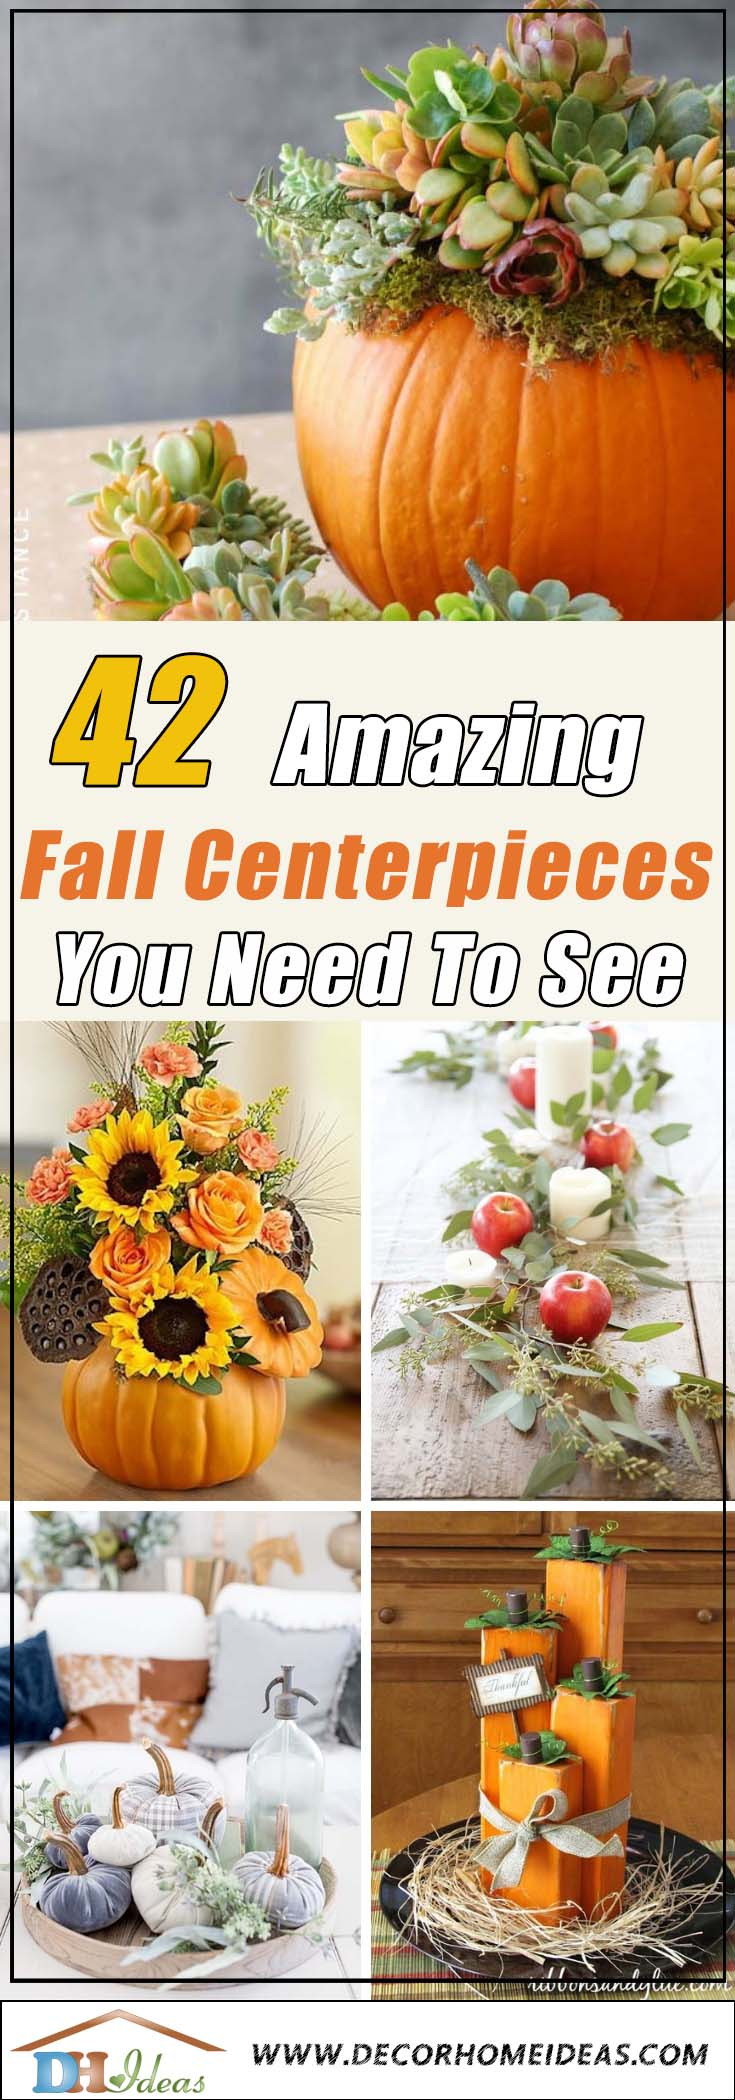 42 Amazing DIY Fall Centerpieces #centerpiece #fallcenterpiece #falldecor #diy #falldecoration #thanksgiving #decorhomeideas